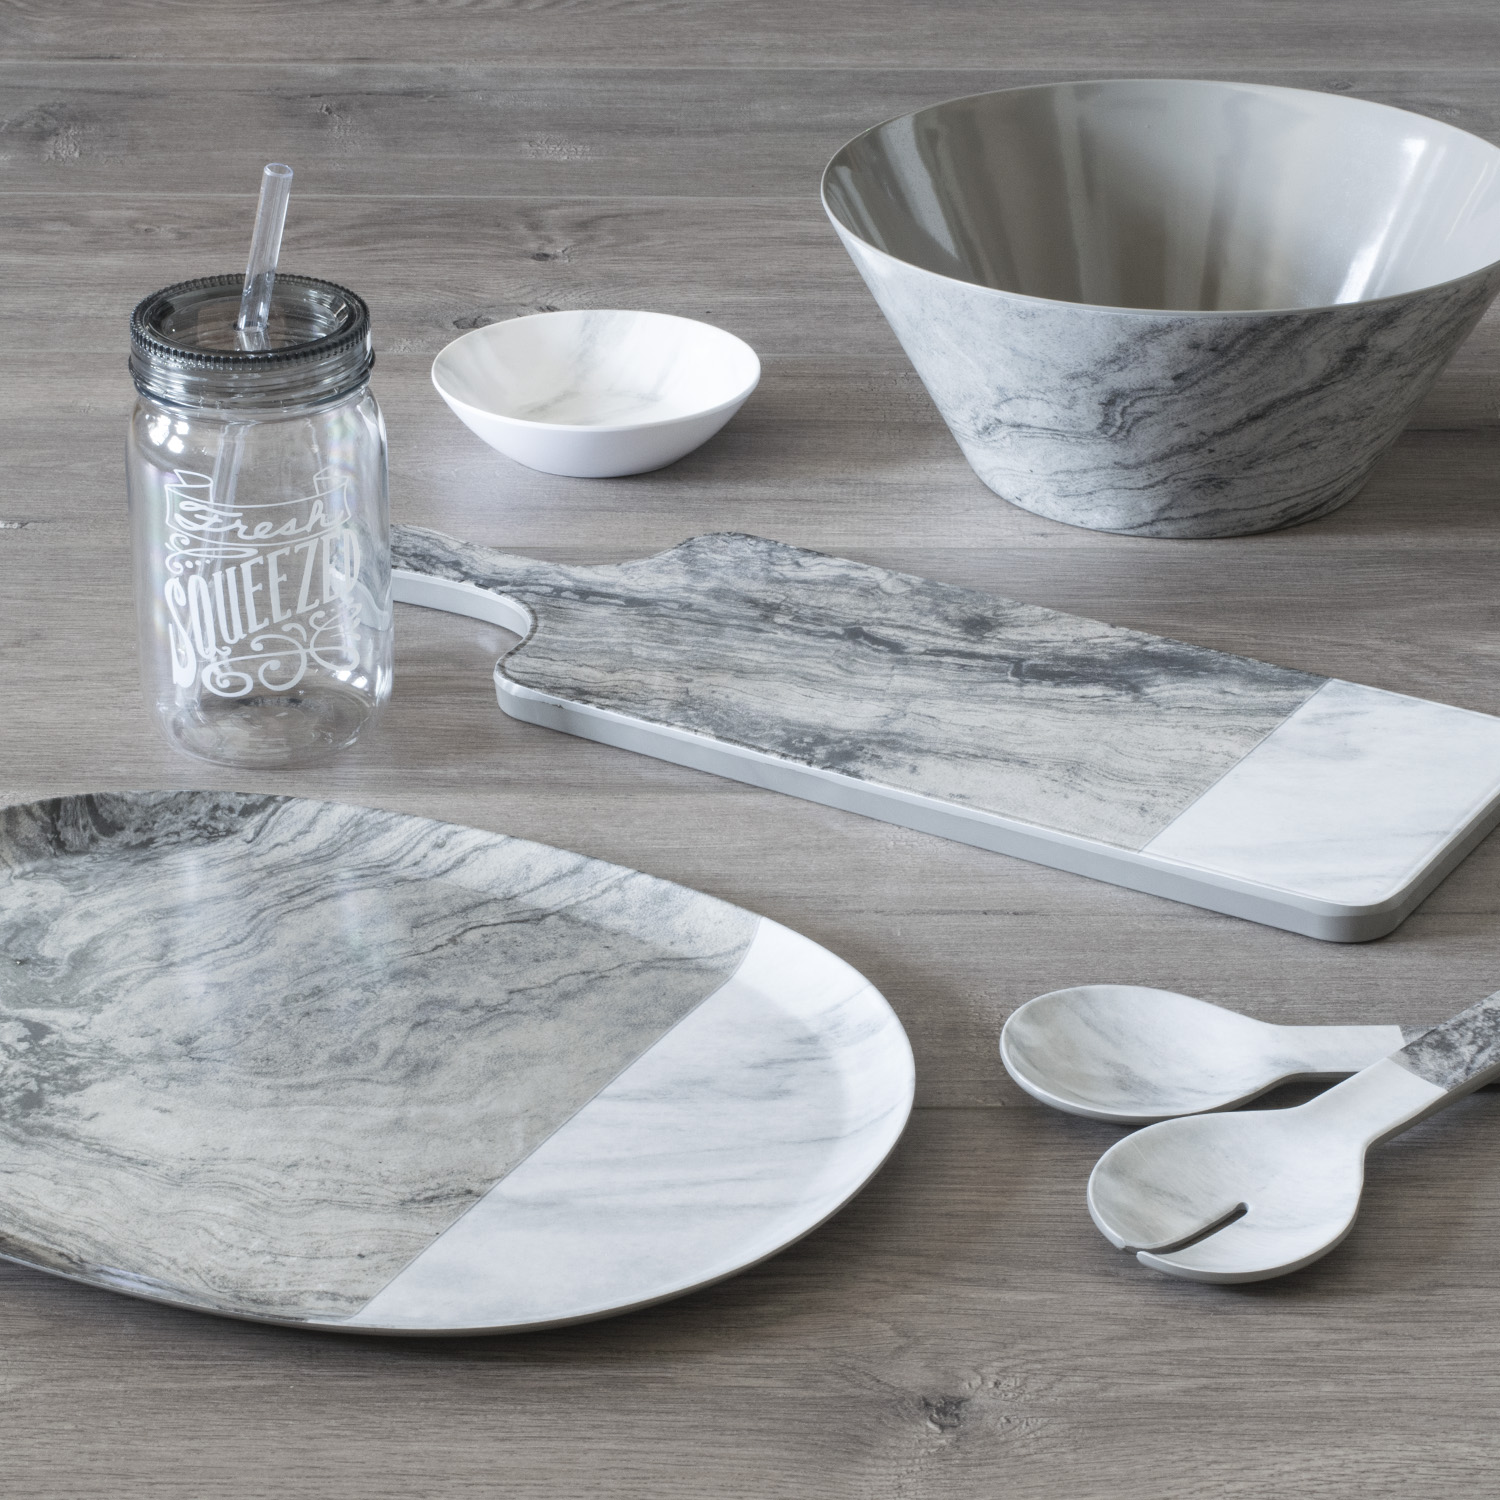 Mainstays Gallery Pewter Serveware Set